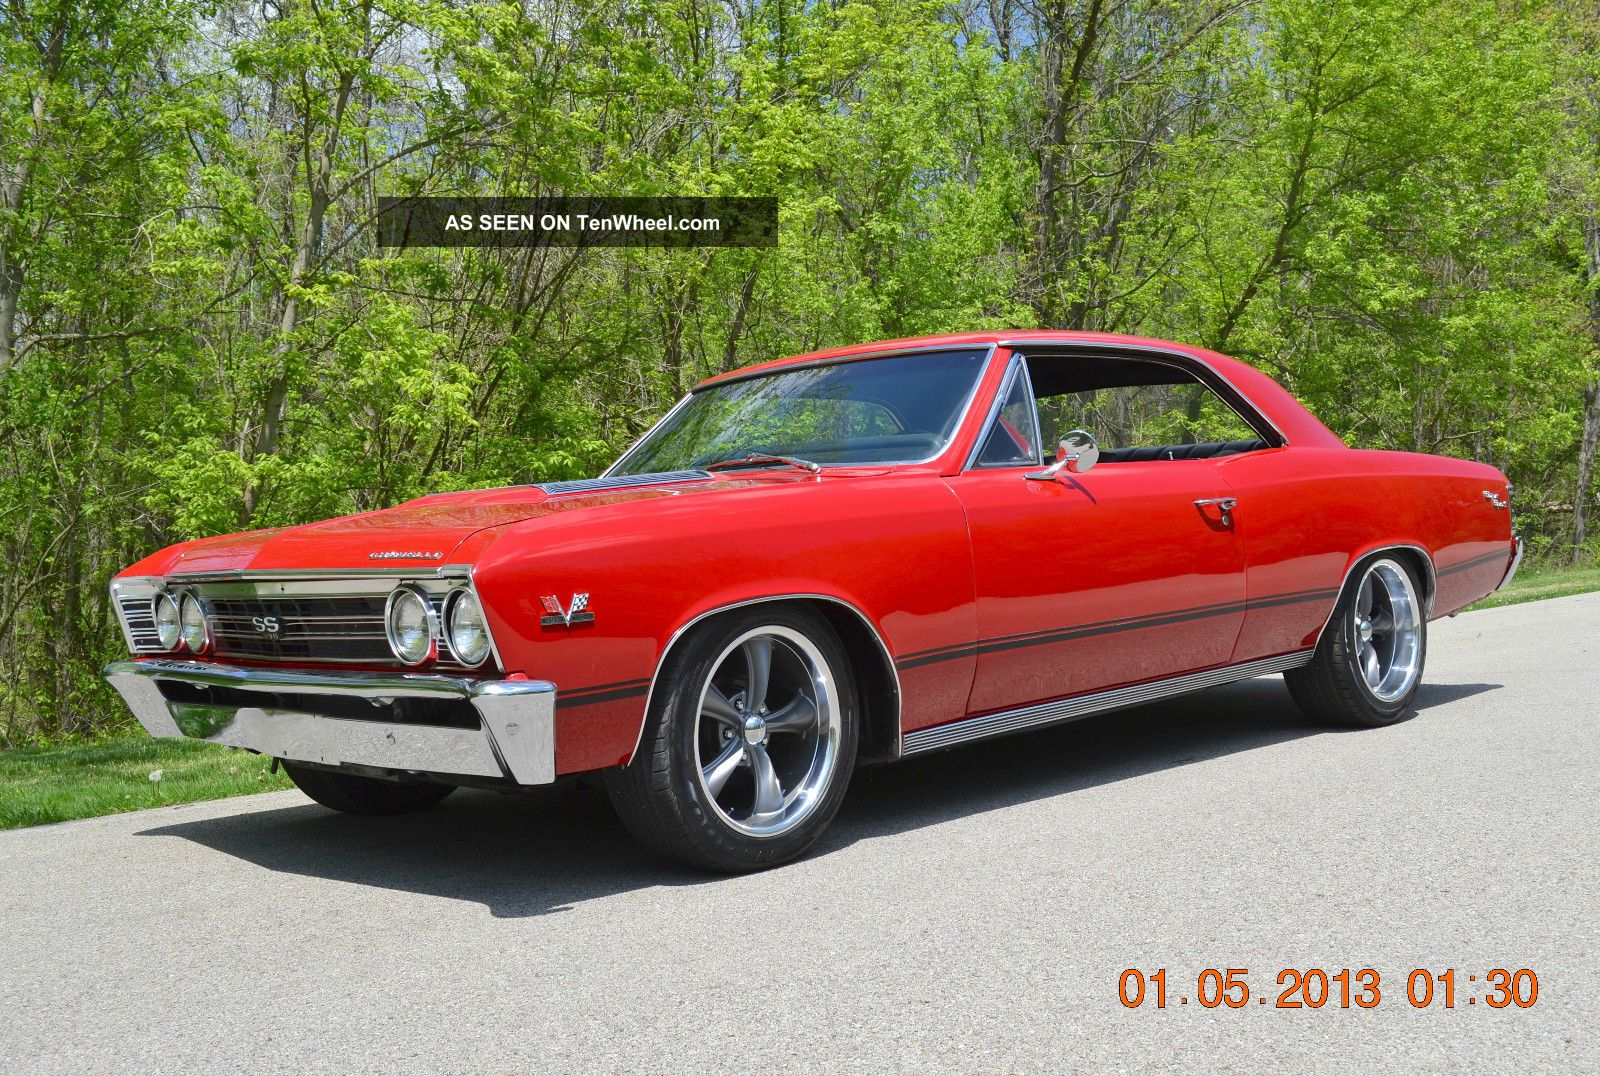 1967 Chevelle Ss Pro Touring Look Strong 406 Condition Awesome Stance Chevelle photo